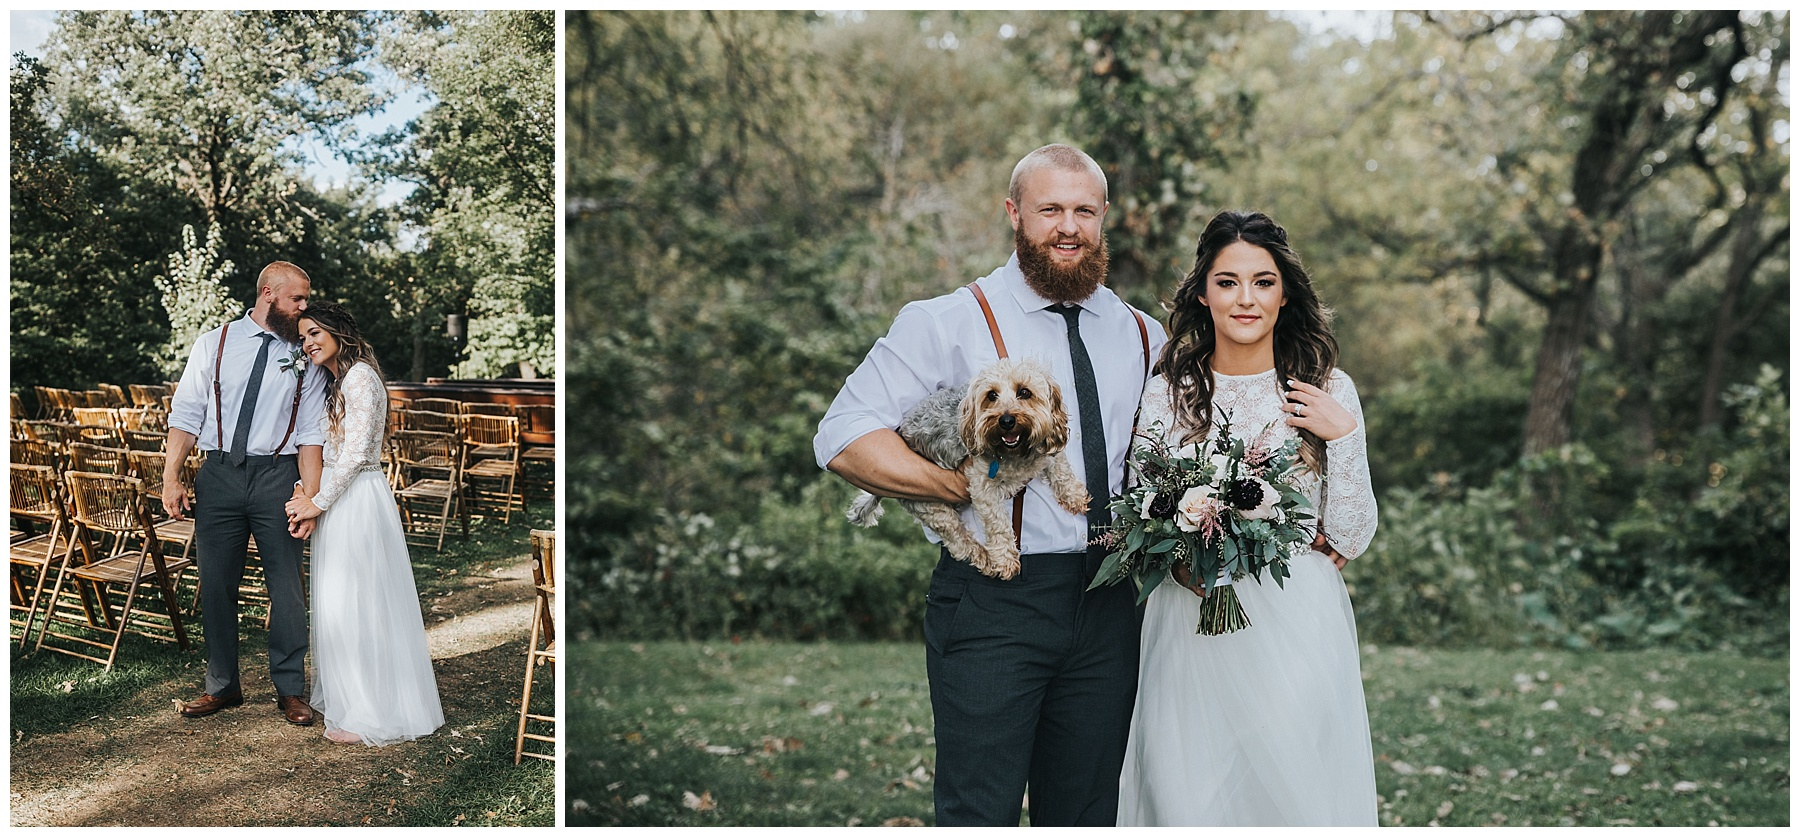 Bride and groom with their pup, Carter